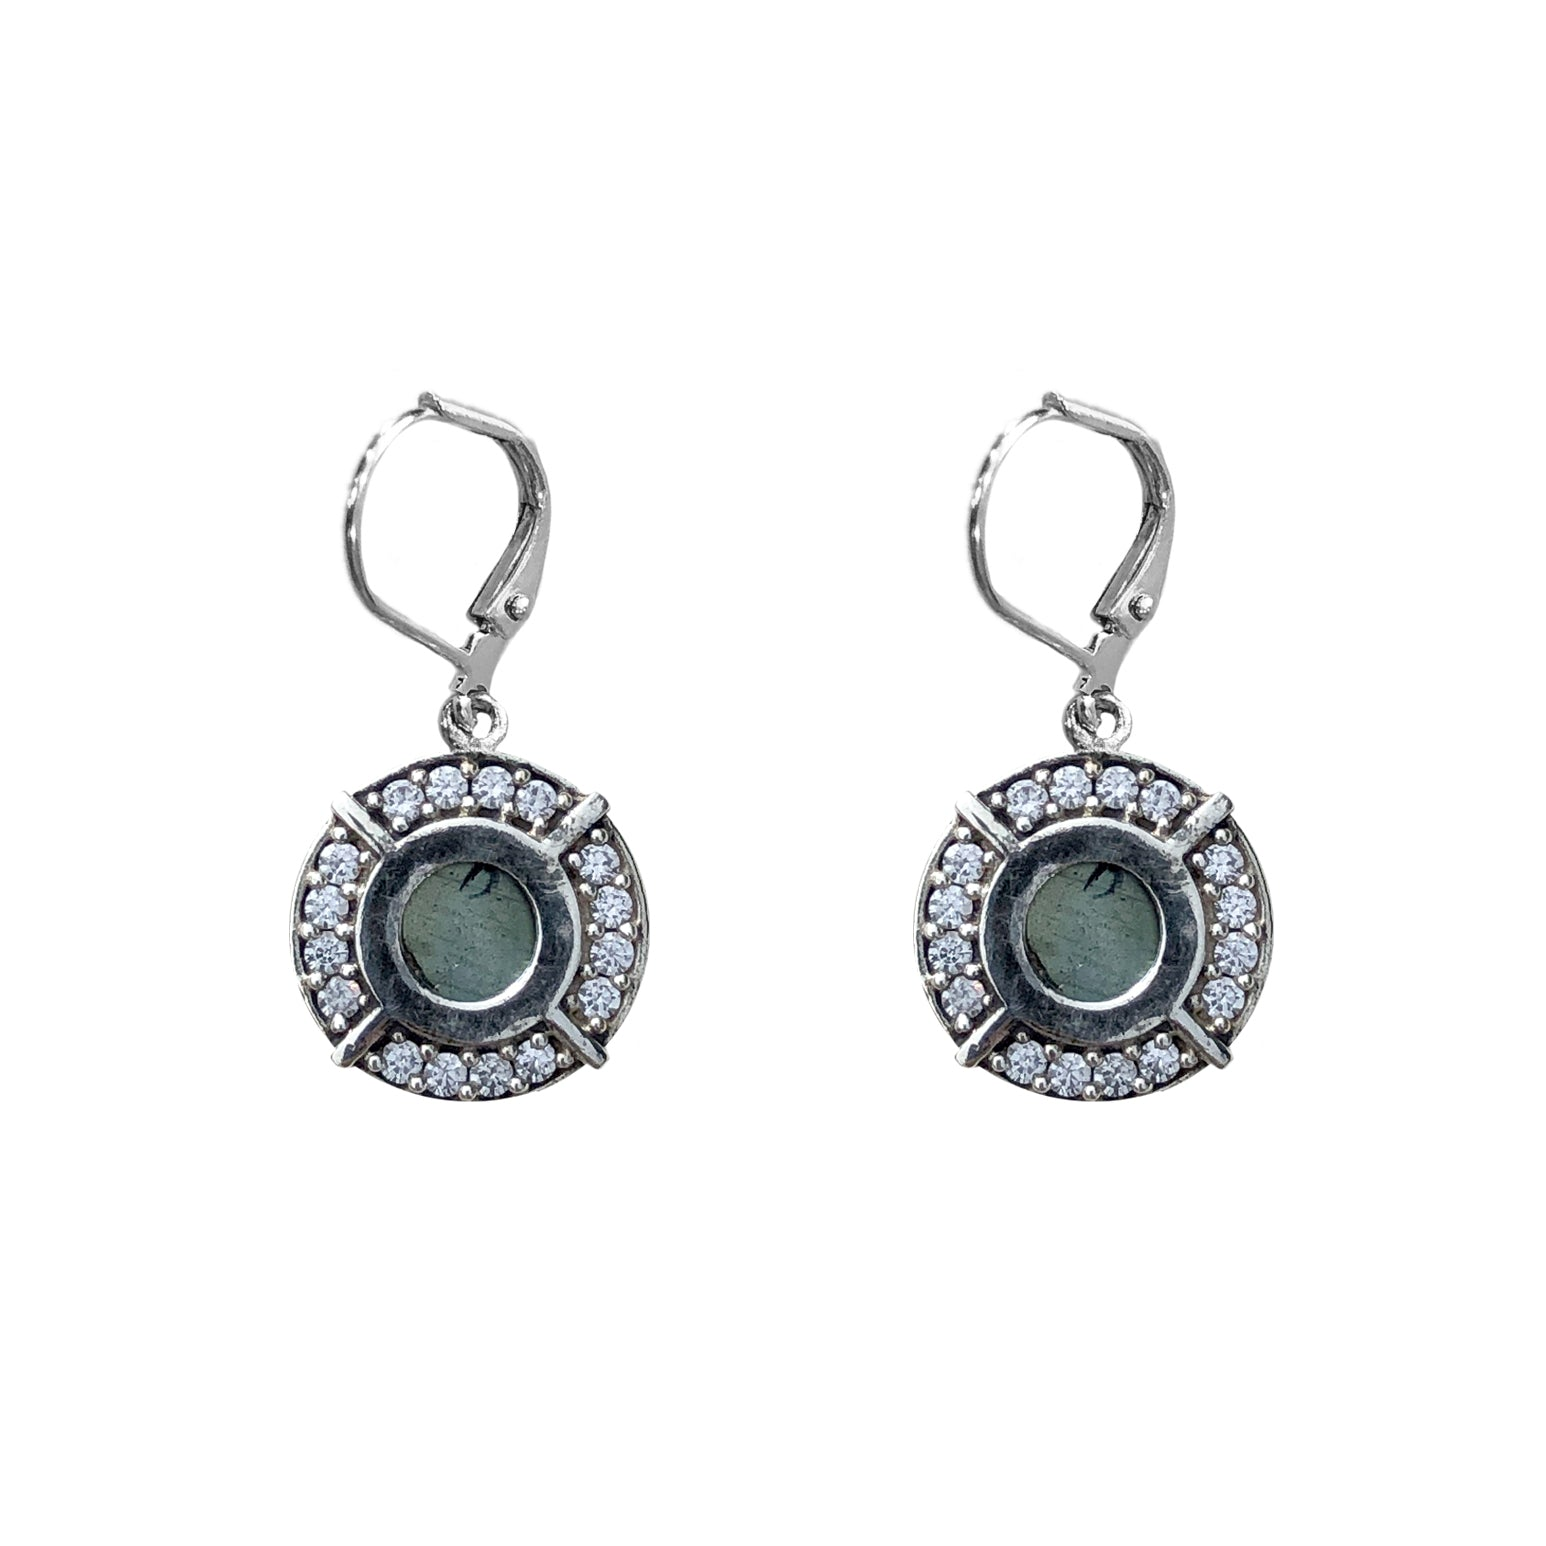 VINTAGE SILVER FRAME MINI LABRADORITE EARRINGS